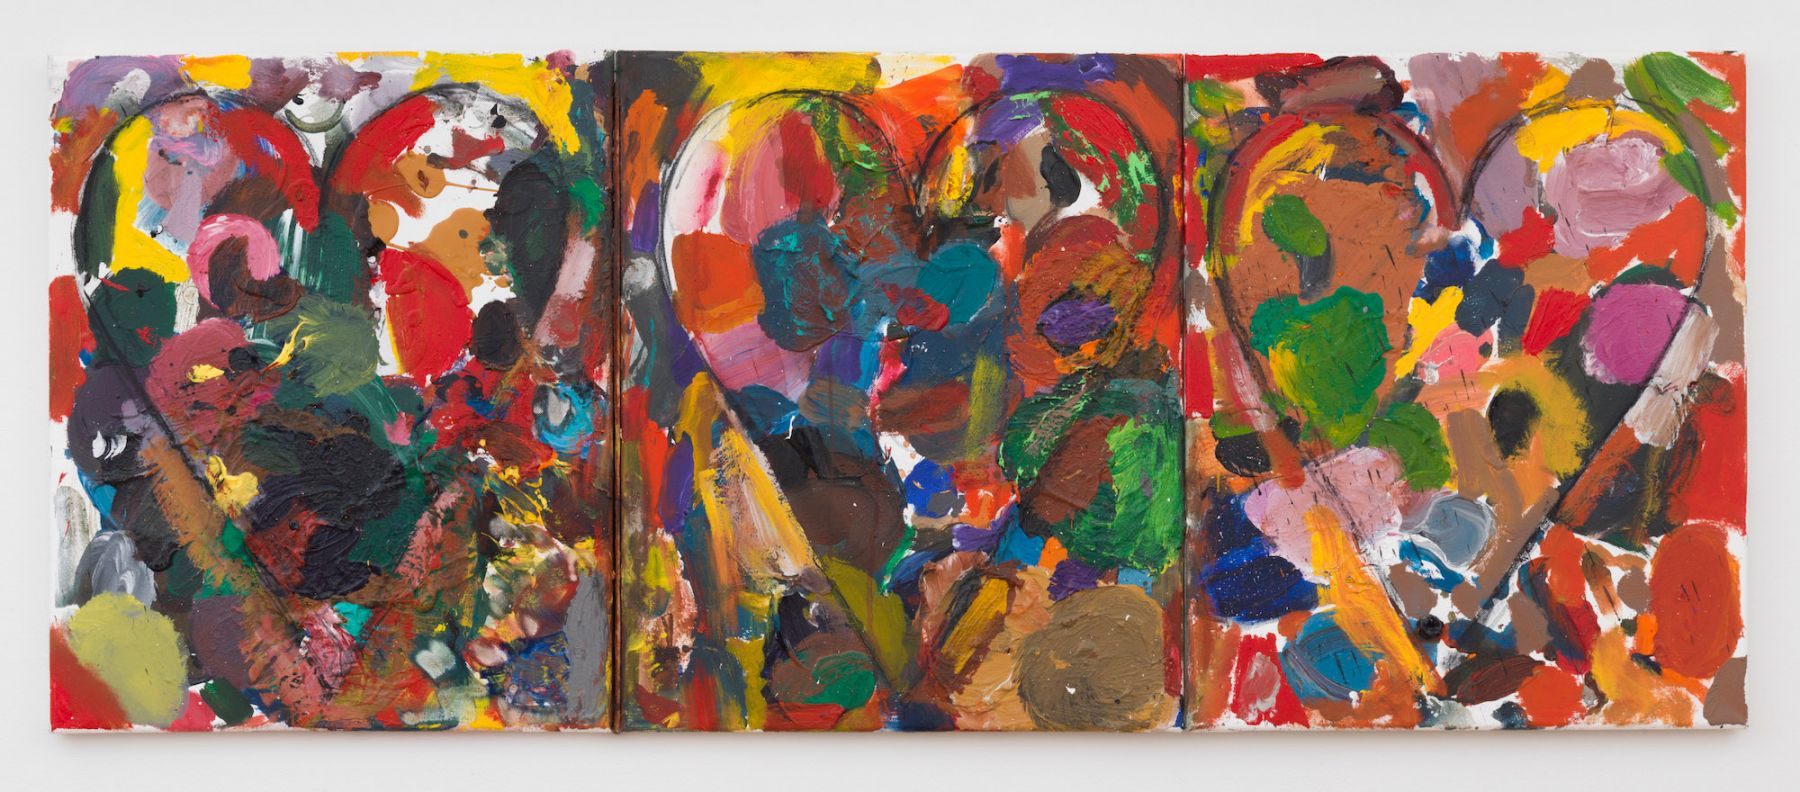 Jim Dine, Swimming in the French Sea, 2015